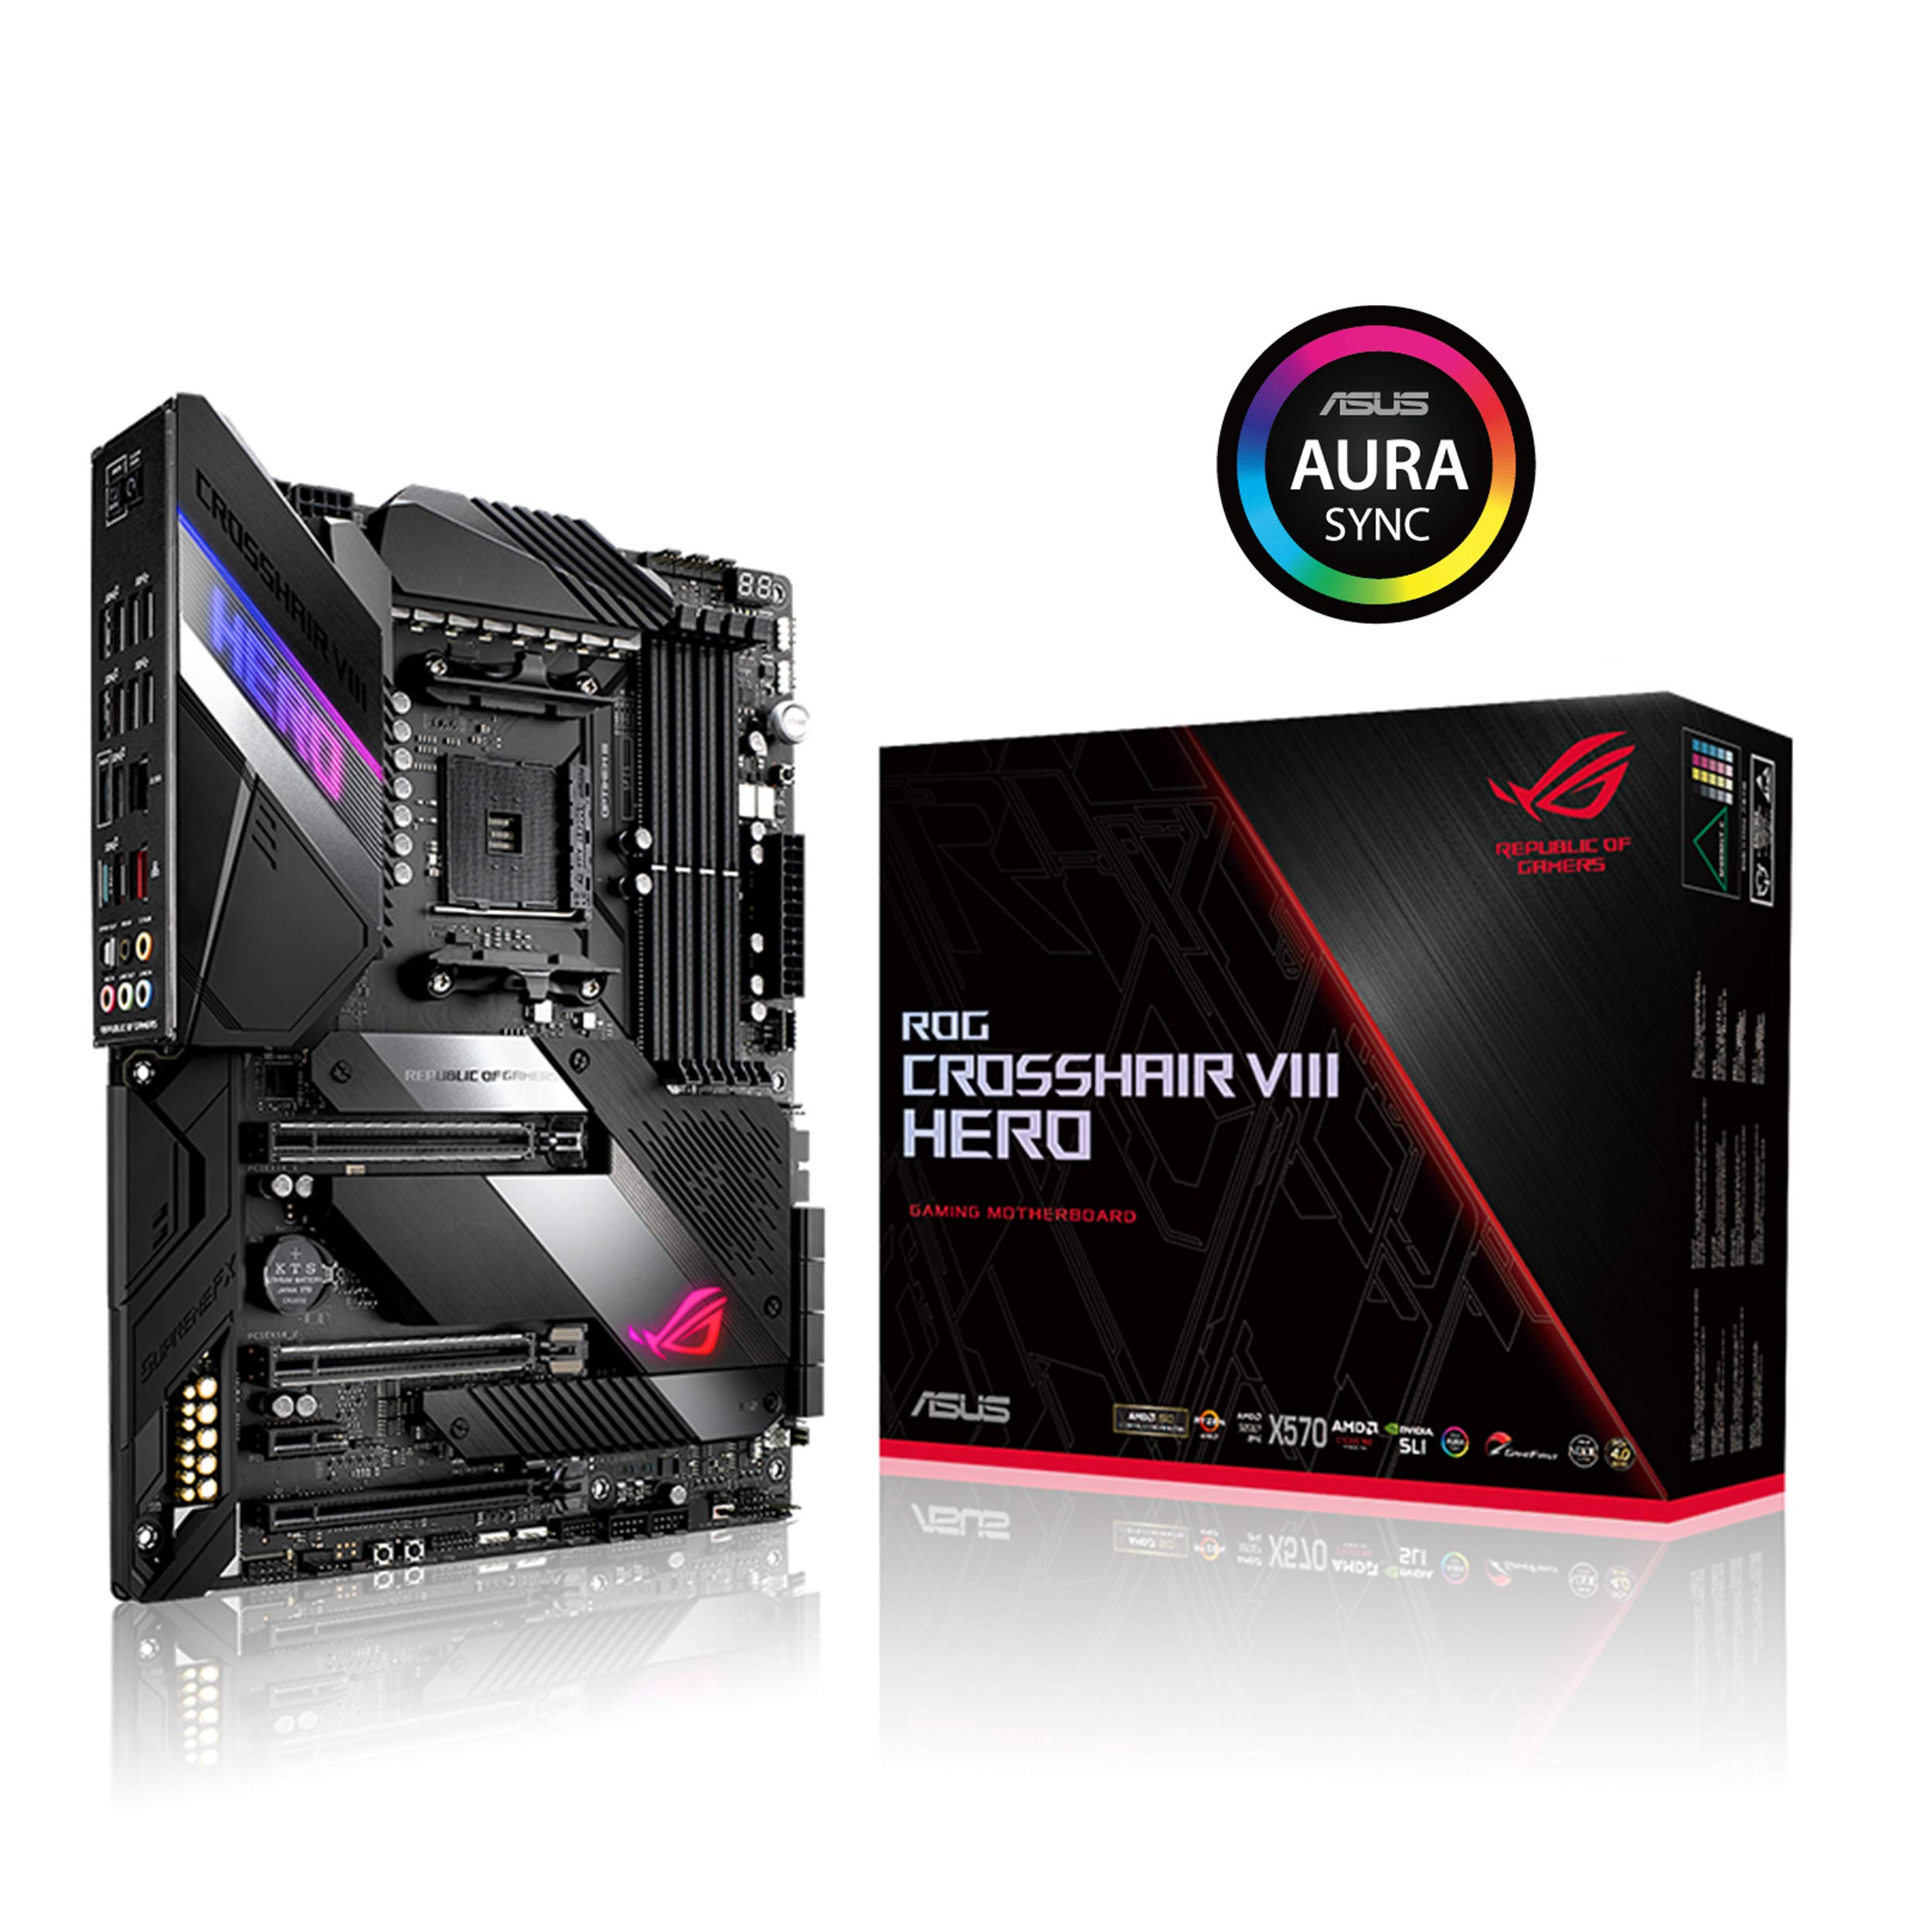 ASUS ROG Crosshair VIII Hero X570 ATX Motherboard with PCIe 4.0, Integrated 2.5 Gbps LAN, USB 3.2, SATA, M.2, Node and Aura Sync RGB Lighting by ASUS